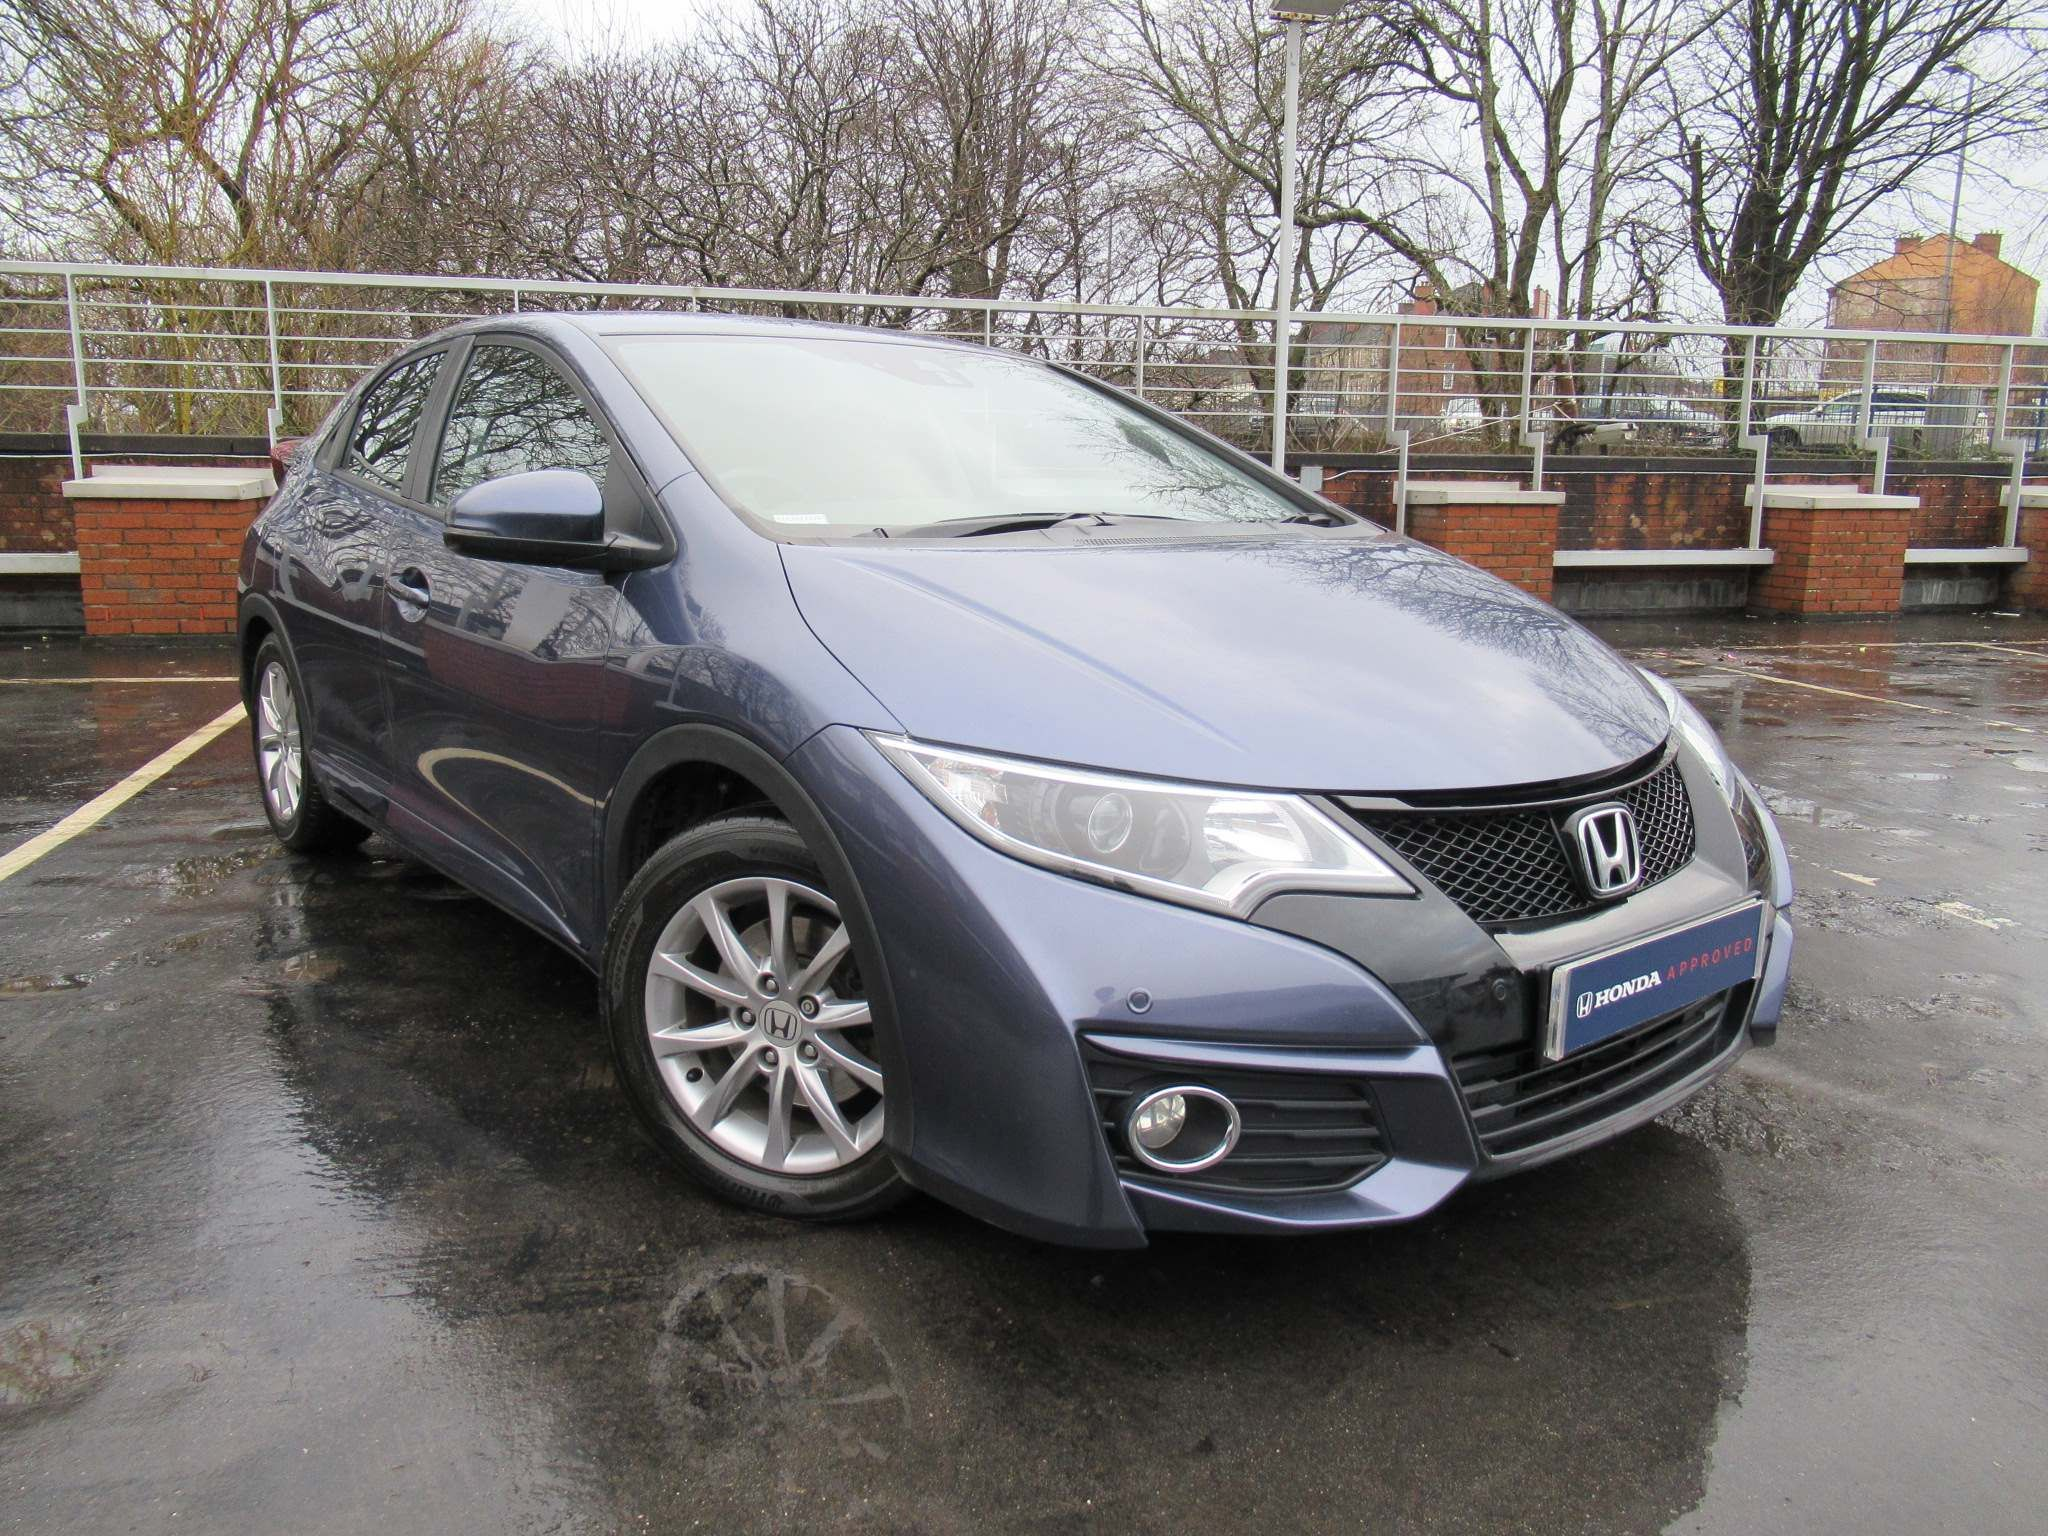 Honda Civic 1.6 i-DTEC SE Plus (s/s) 5dr